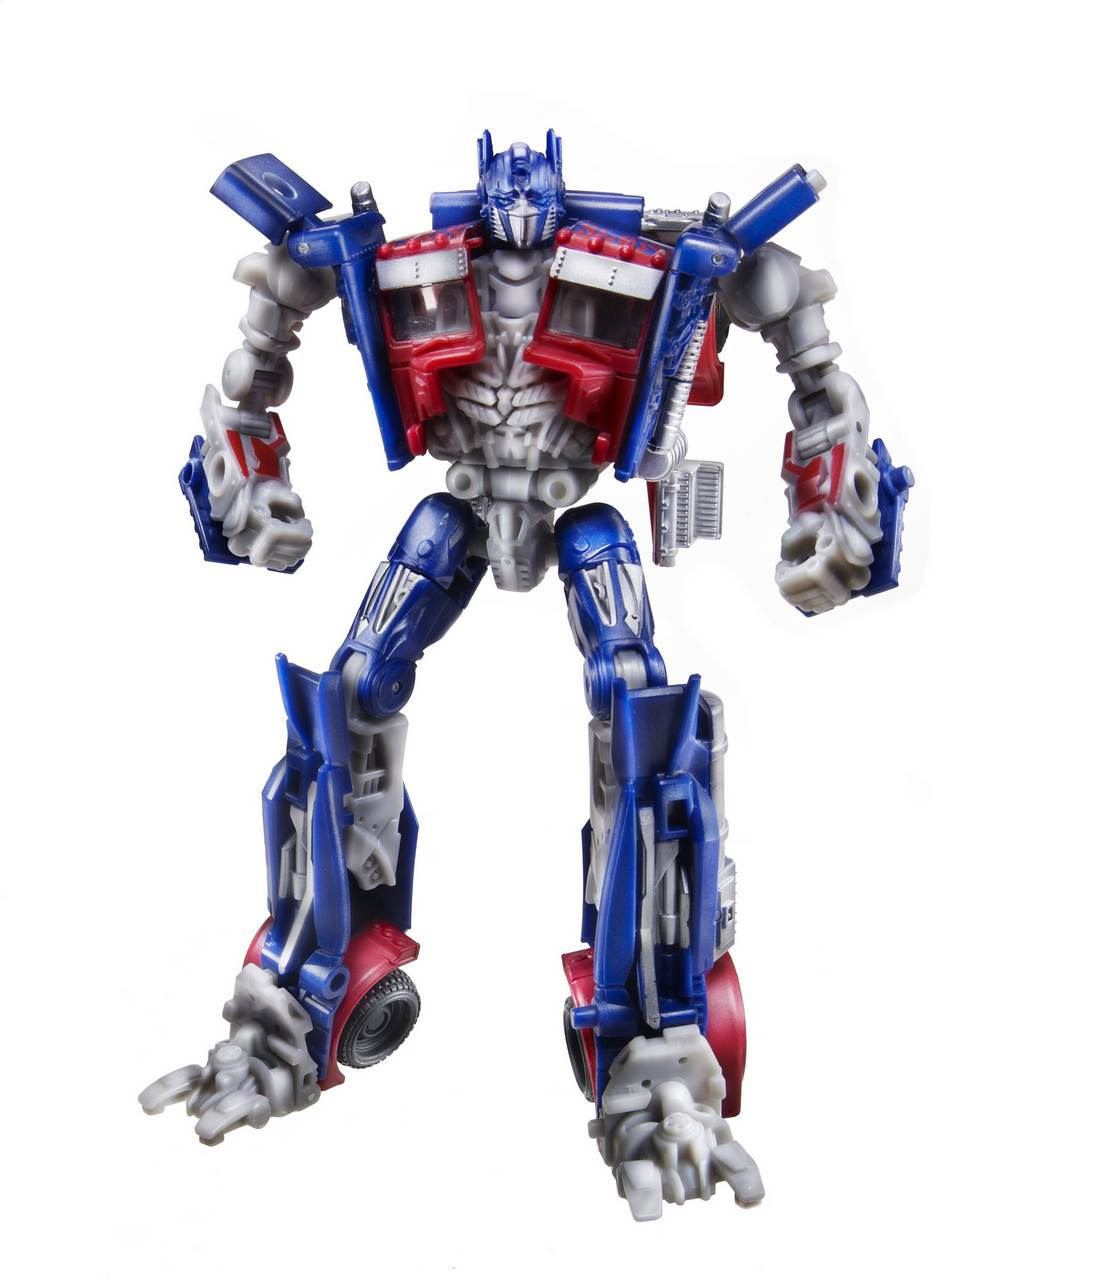 optimus prime with trailer all star ultra transformers toys Ultra Magnus optimus prime with trailer all